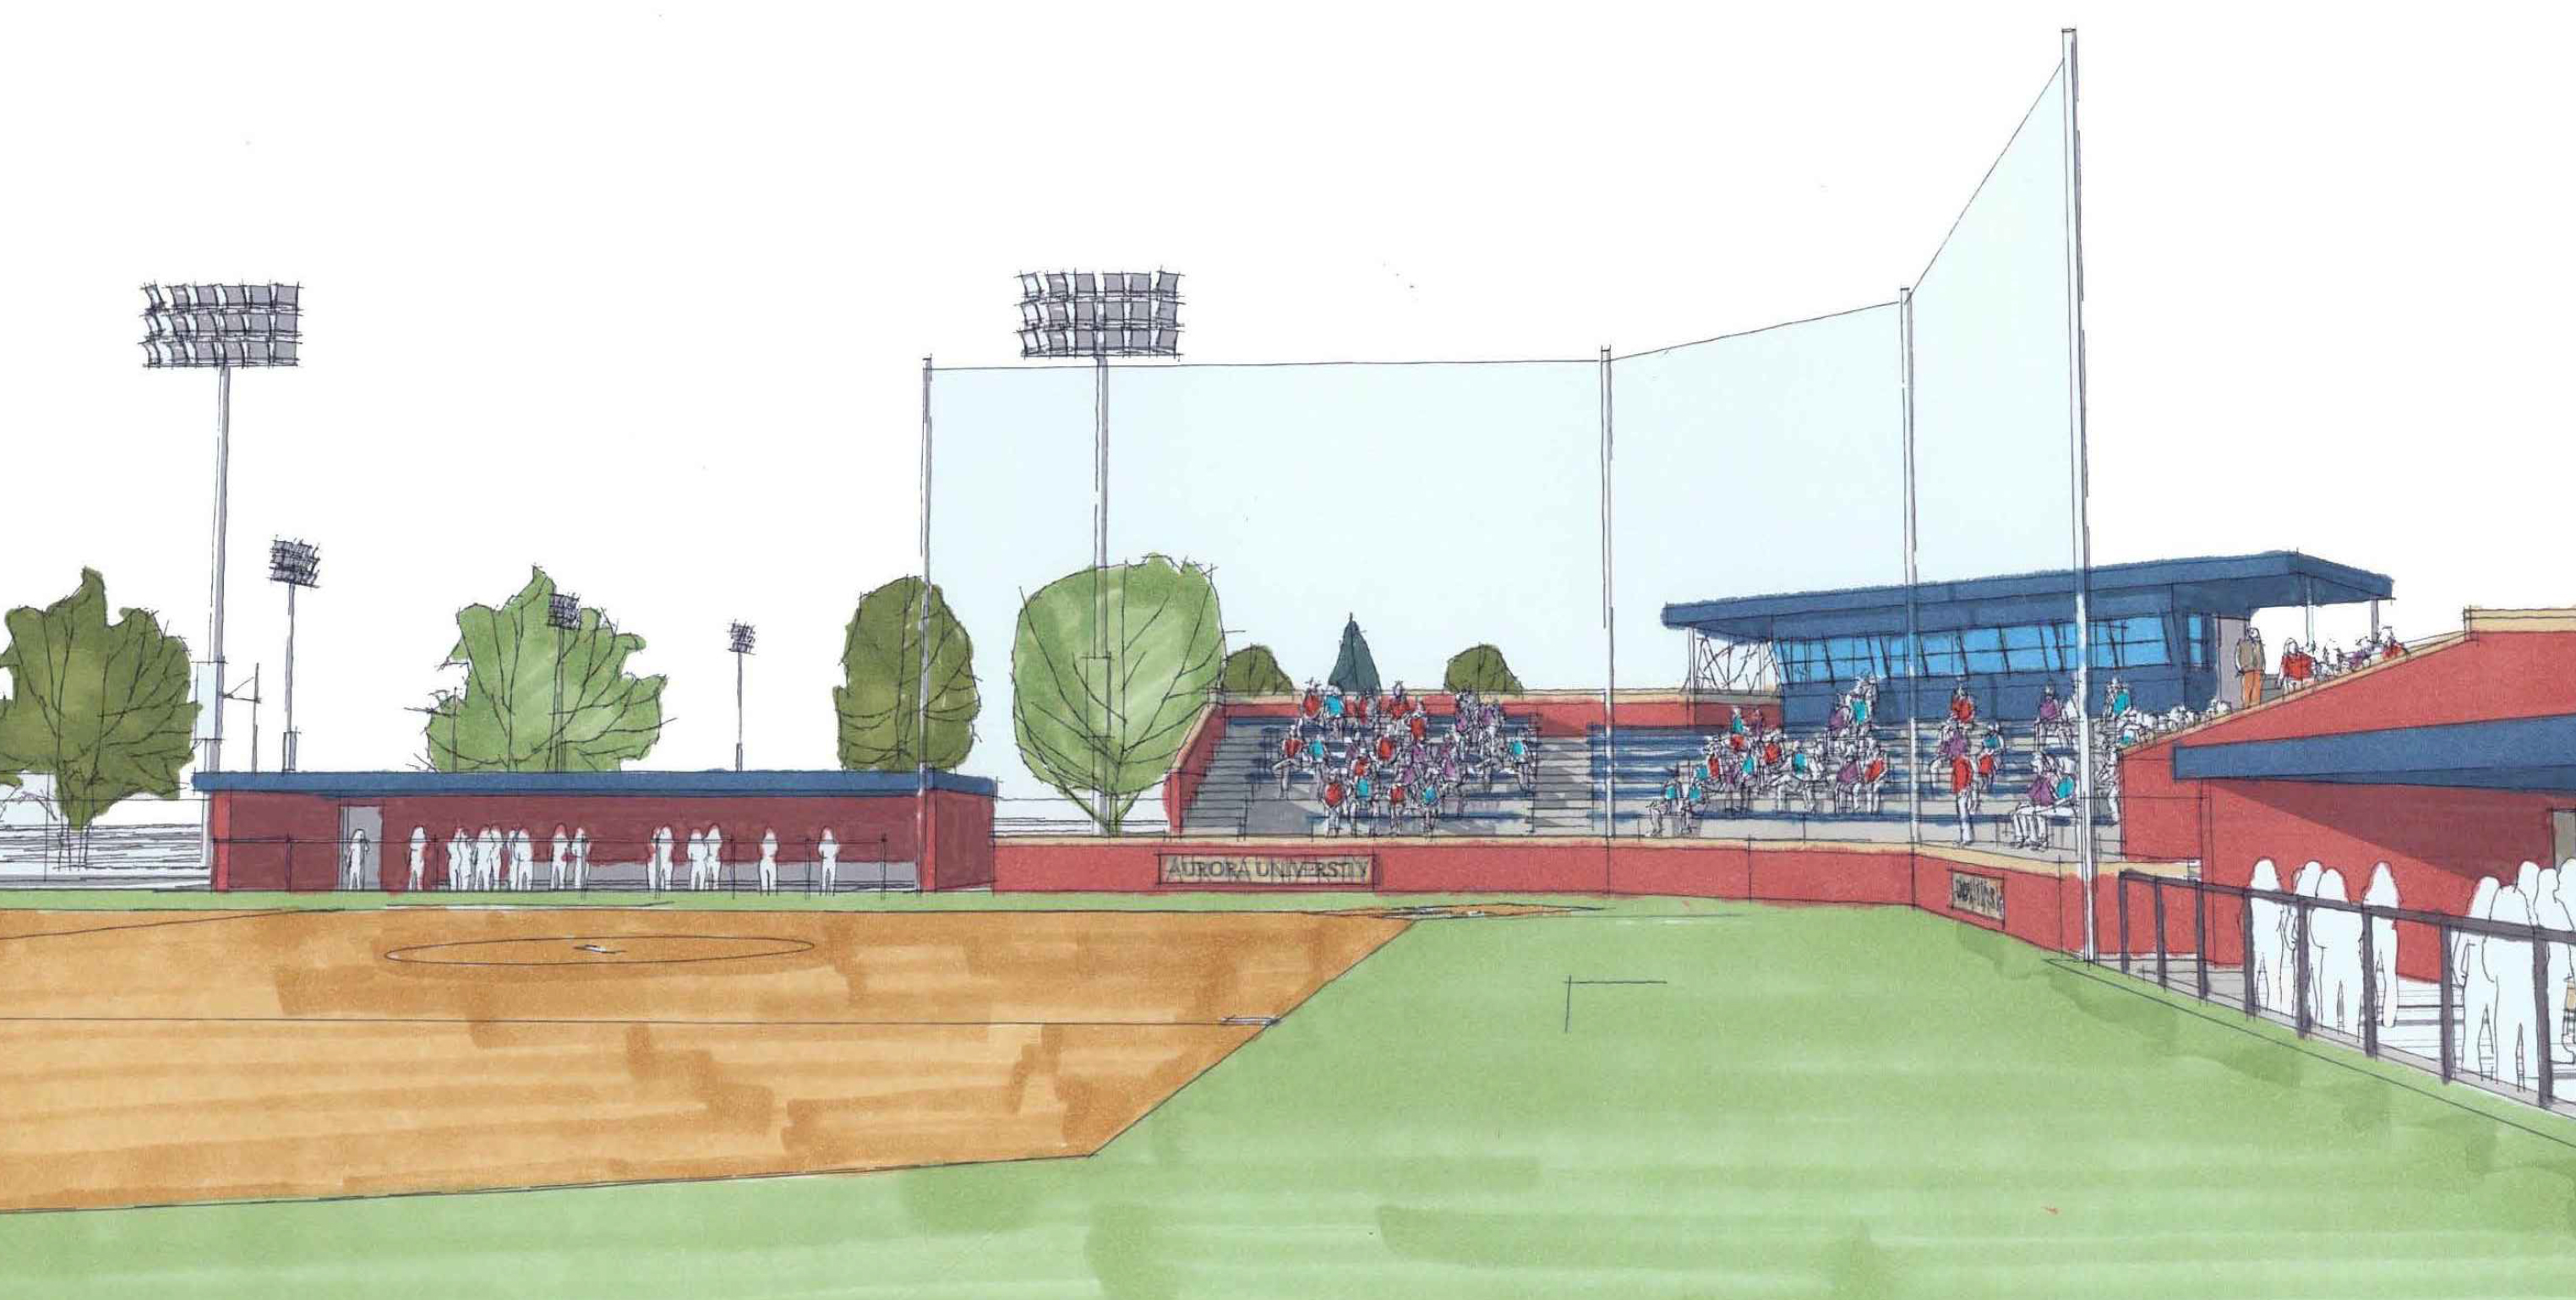 Softball rendering